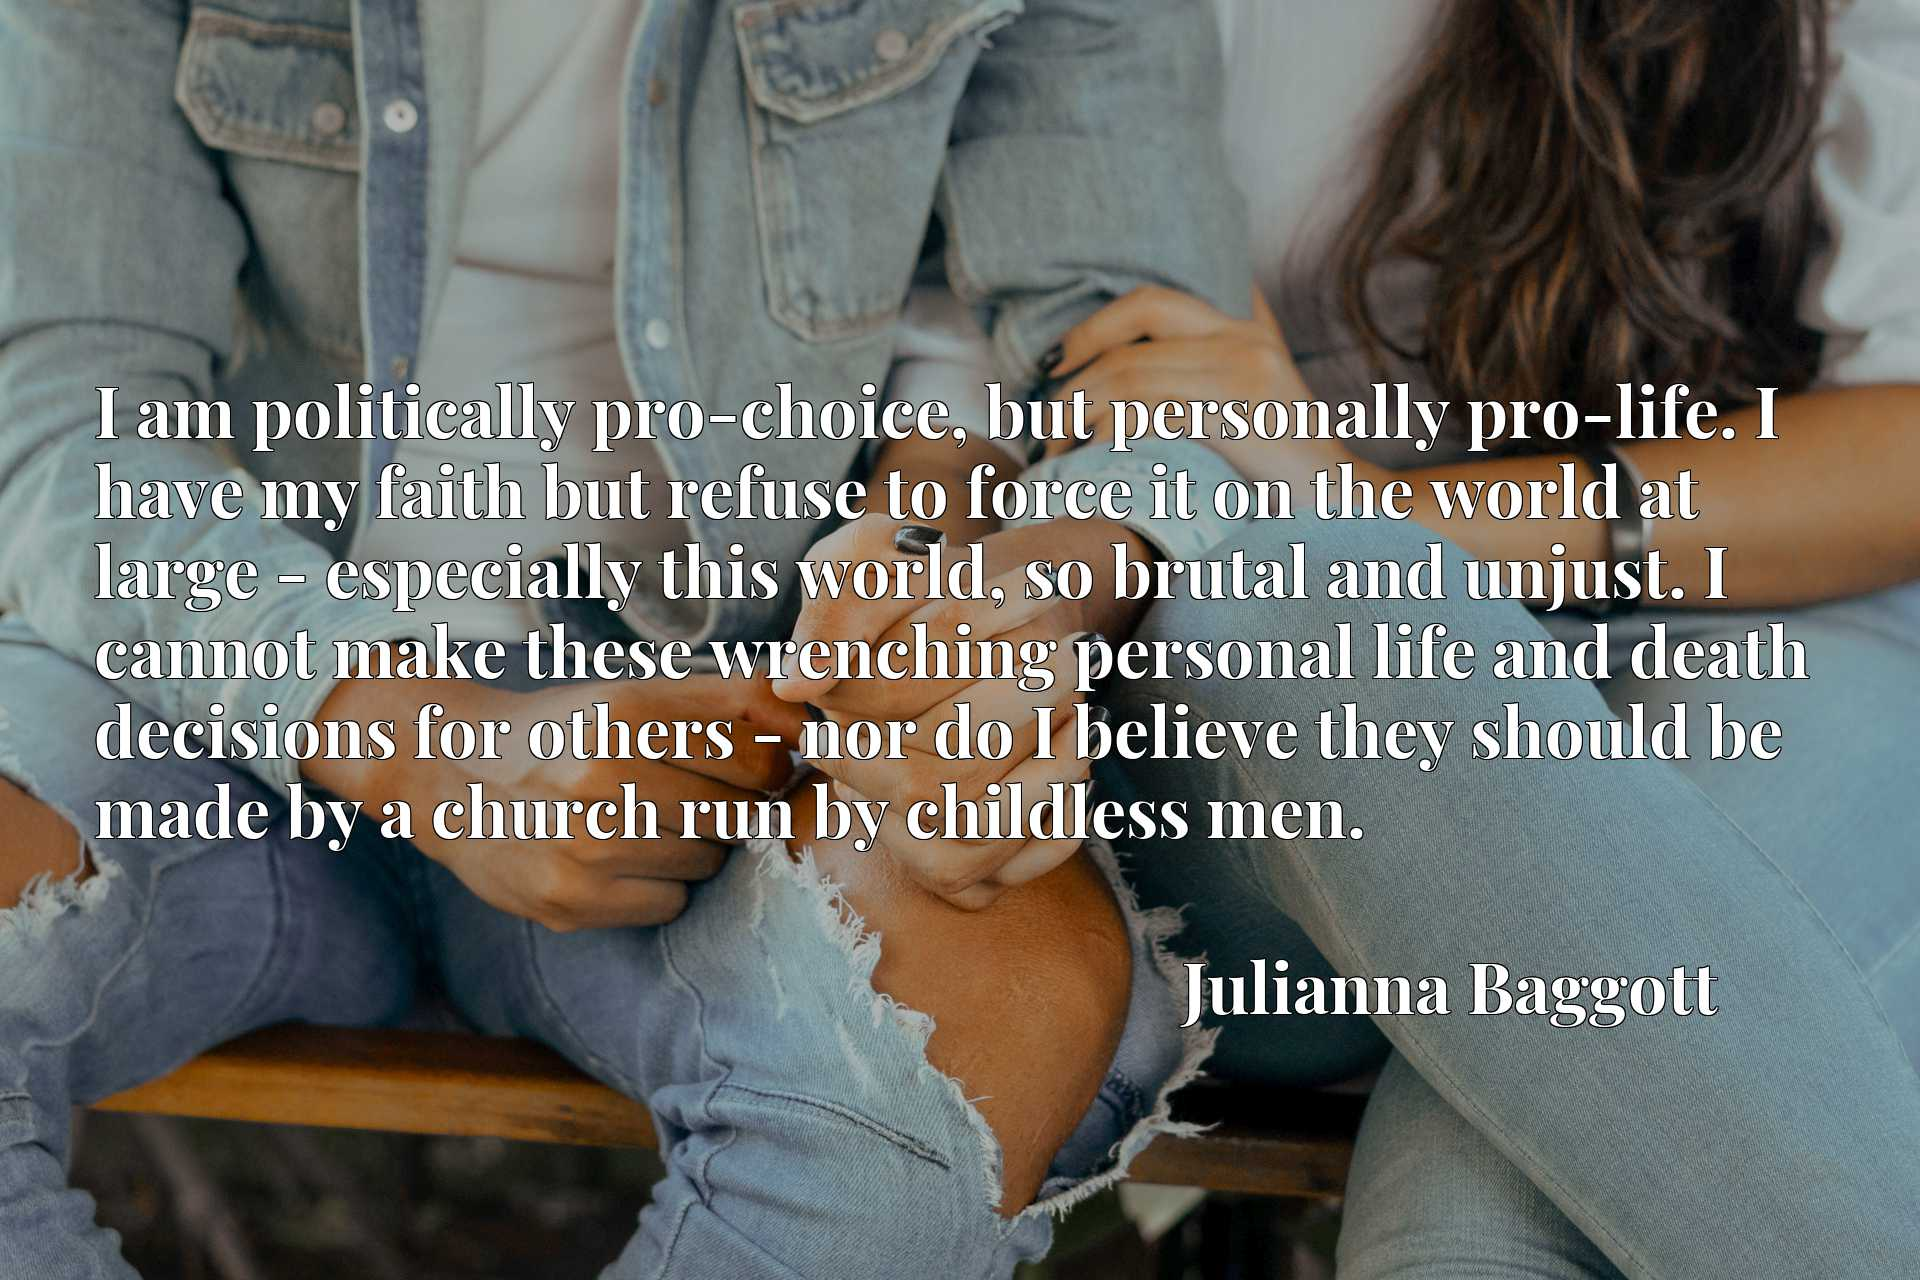 I am politically pro-choice, but personally pro-life. I have my faith but refuse to force it on the world at large - especially this world, so brutal and unjust. I cannot make these wrenching personal life and death decisions for others - nor do I believe they should be made by a church run by childless men.